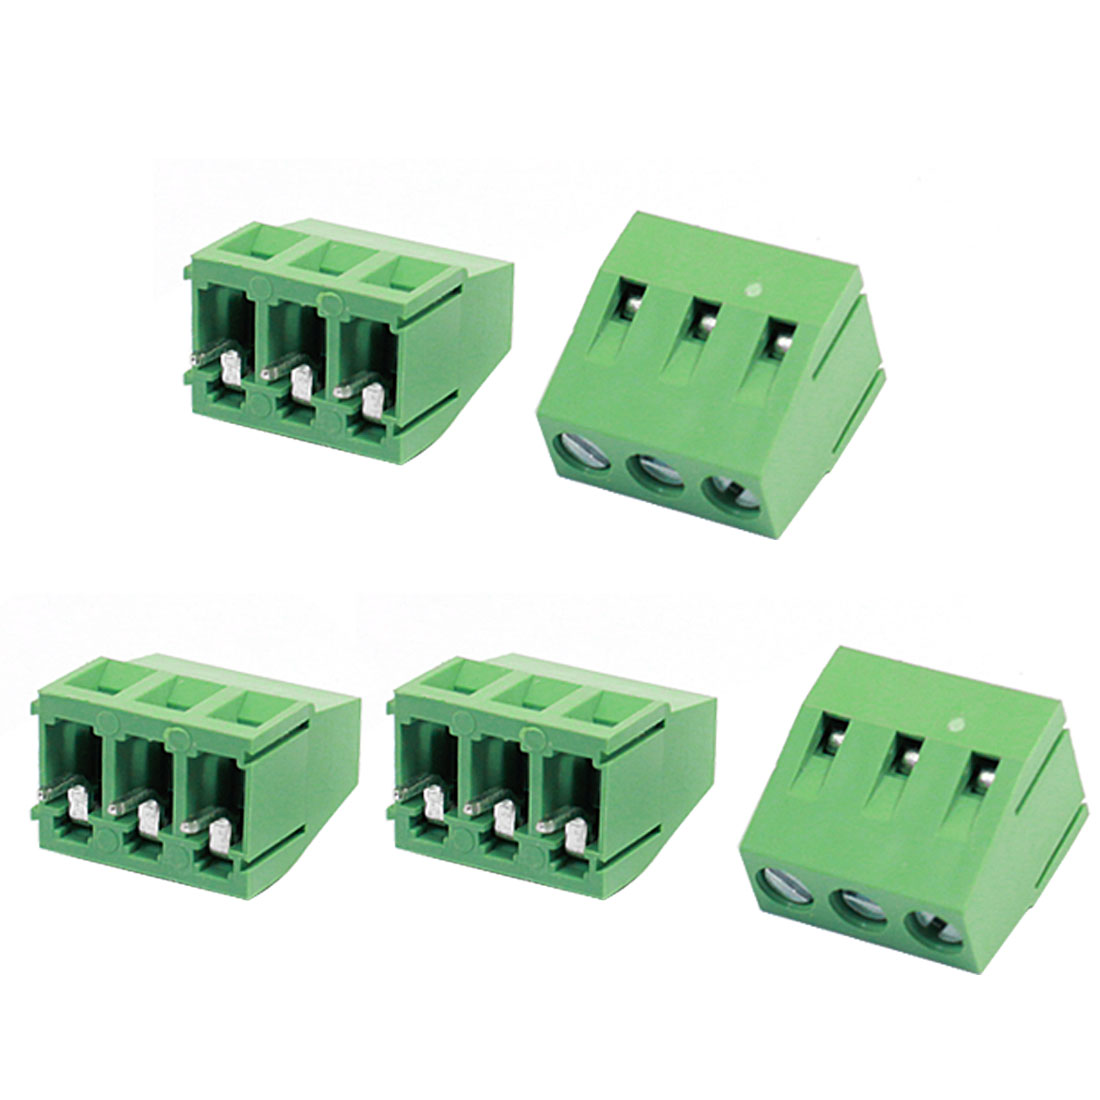 5 Pcs 128-3p 3Pin 5mm Pitch Screw Terminal Block Connector 300V 10A